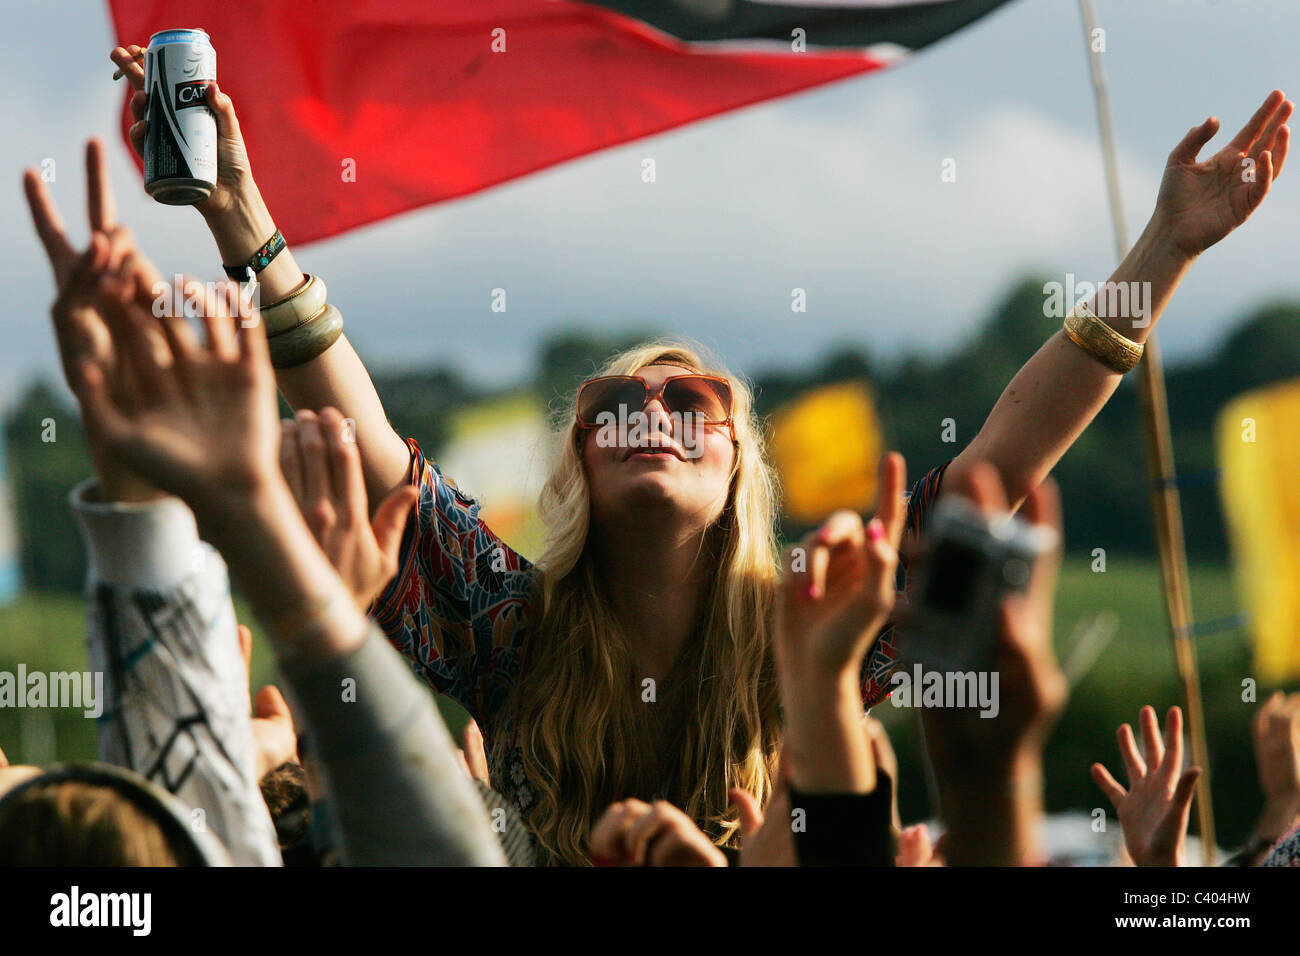 Girl on shoulders cheering at Glastonbury Festival in the sun. - Stock Image